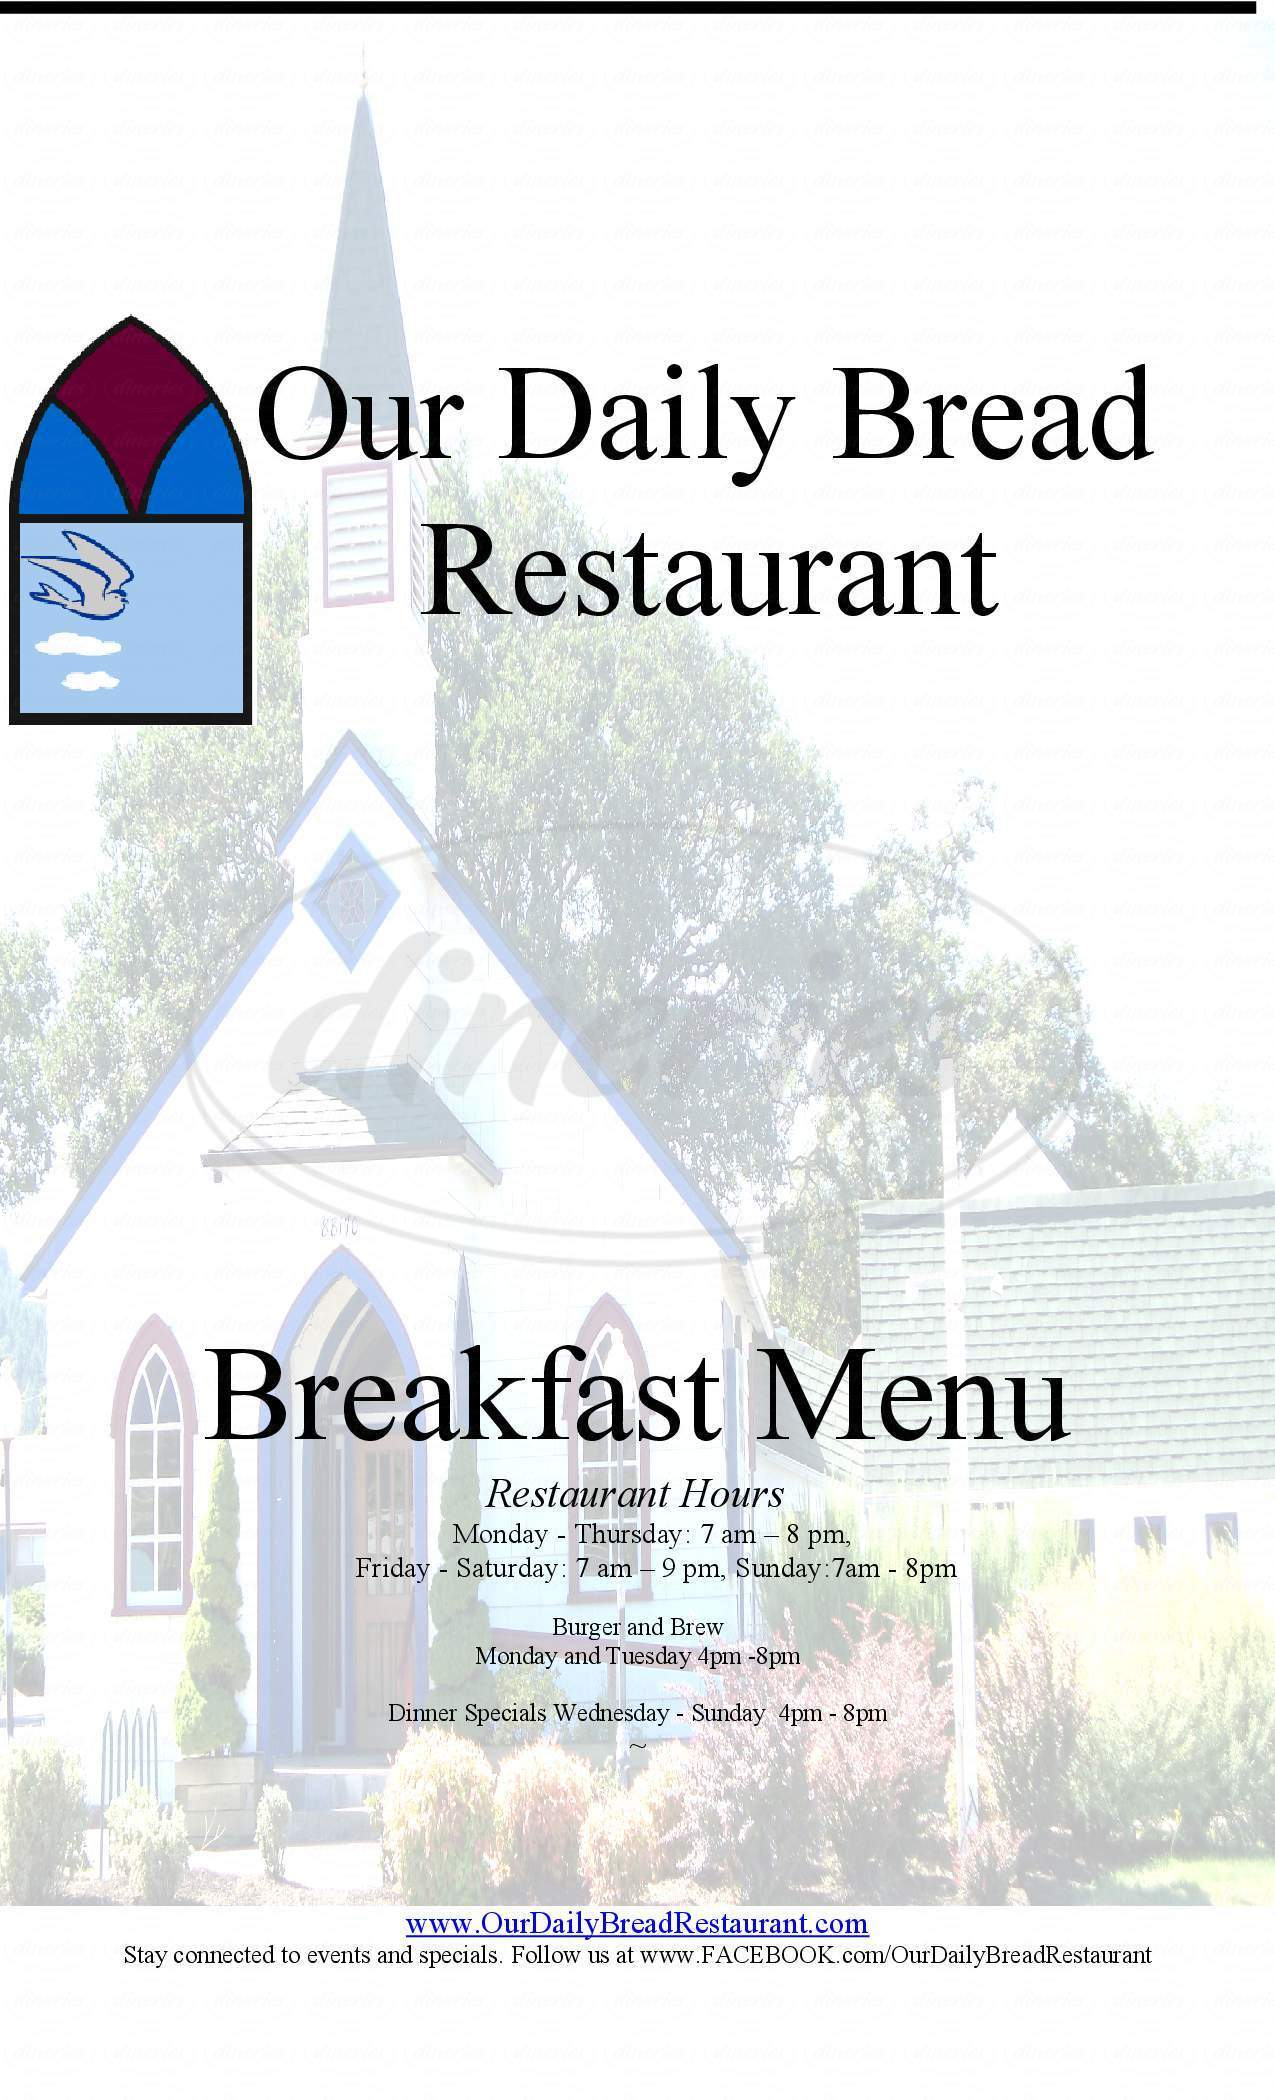 menu for Our Daily Bread Restaurant